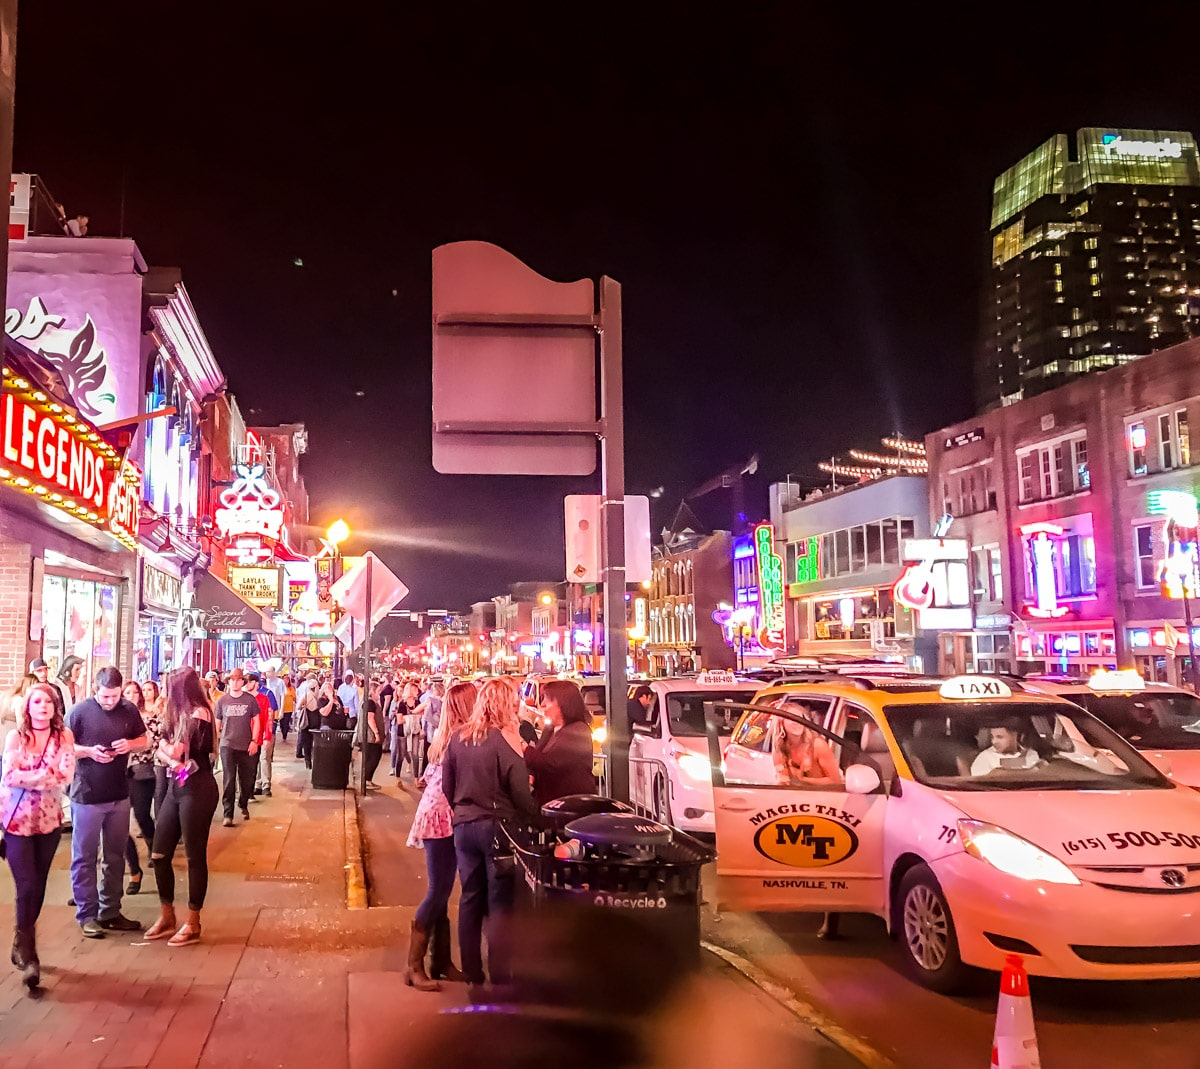 The Ultimate Nashville Travel Guide: 26 Things to do in Nashville - Broadway